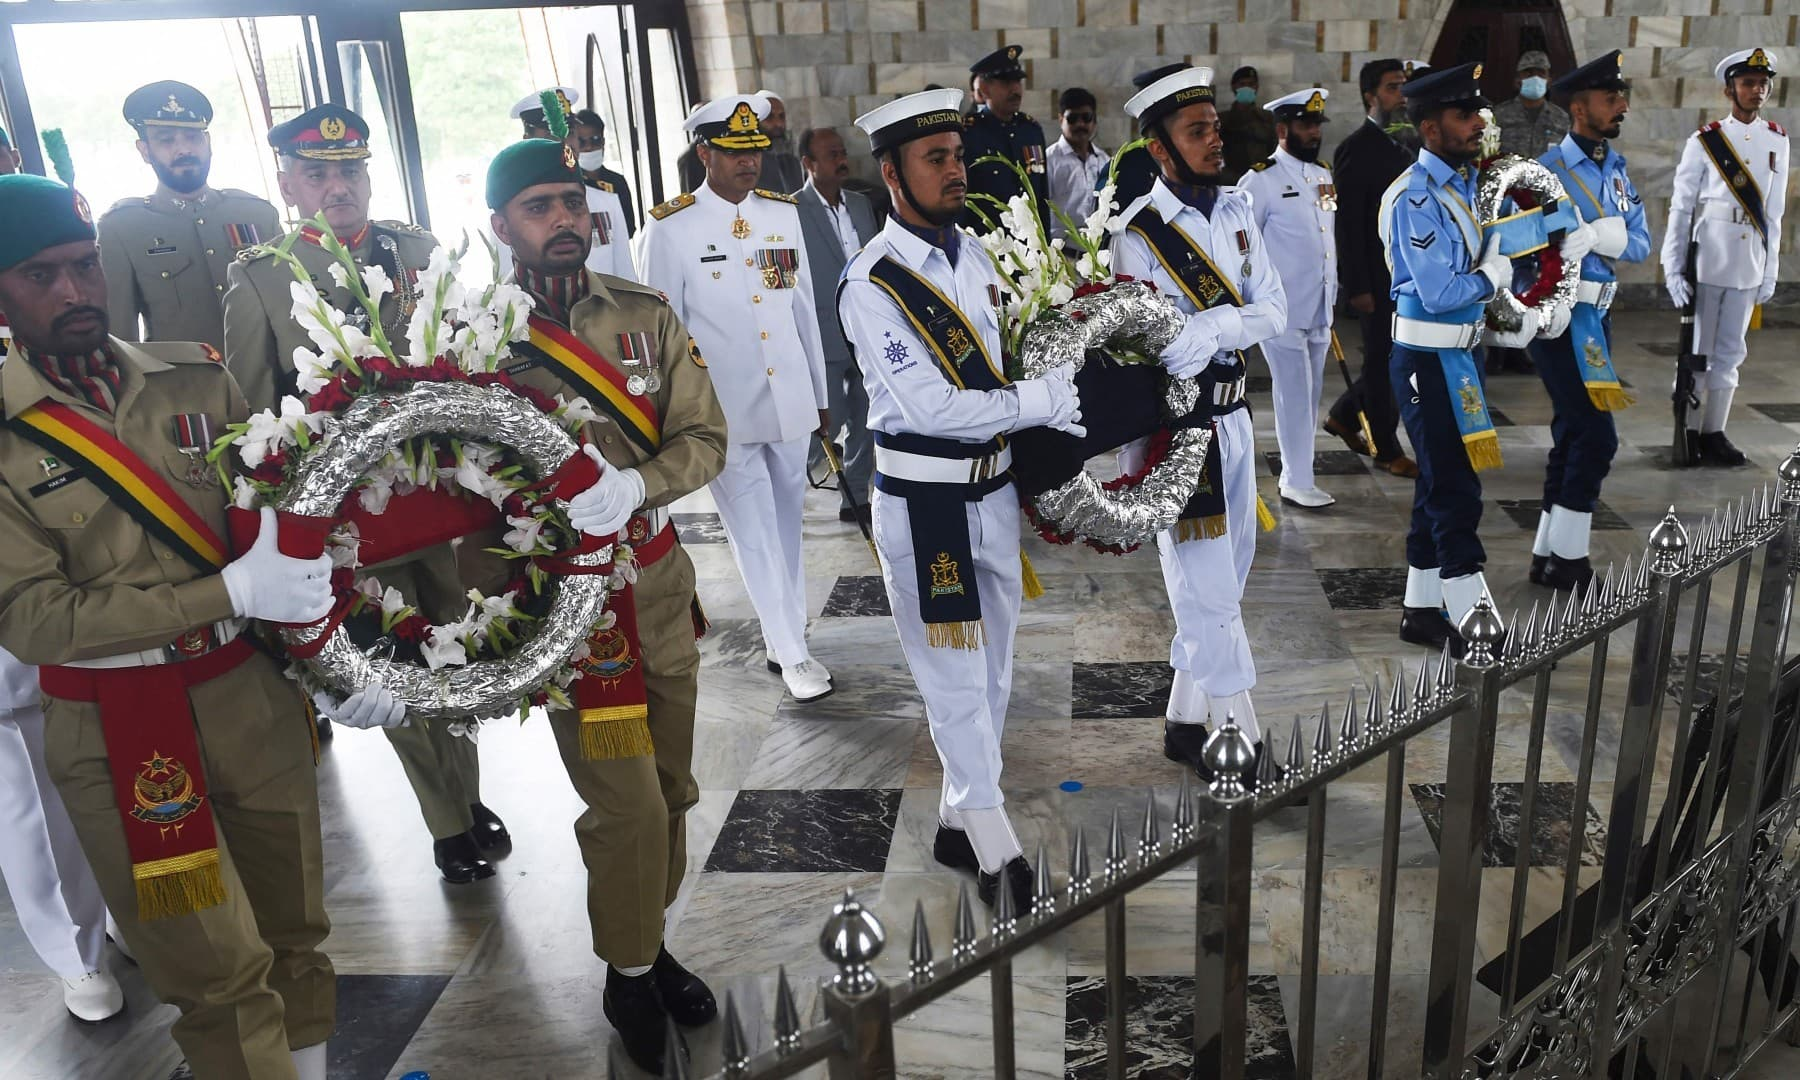 (From L) Pakistan's Army, Navy and Air Force soldiers offer wreaths at  Quaid-i-Azam's mausoleum during Independence Day celebrations in Karachi on August 14. — AFP